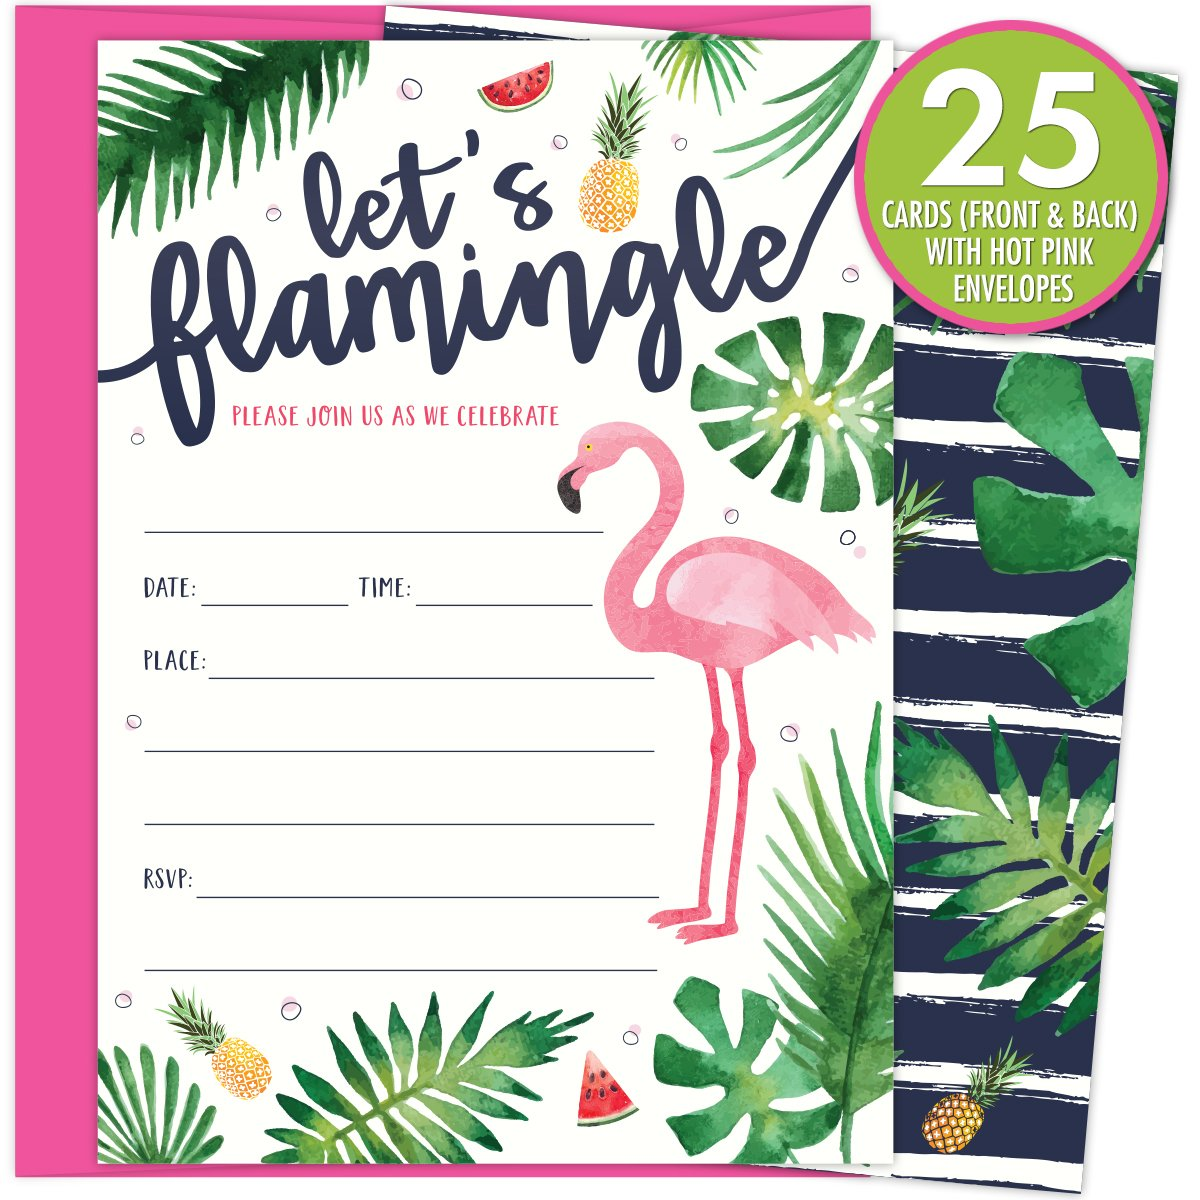 photograph regarding Printable Flamingo Template identified as Permits Flamingle Occasion Invites with Crimson Flamingo and Palm Leaves. 25 Warm Purple Envelopes and Fill within Invitations for Soirees, Bridal Showers, Kid